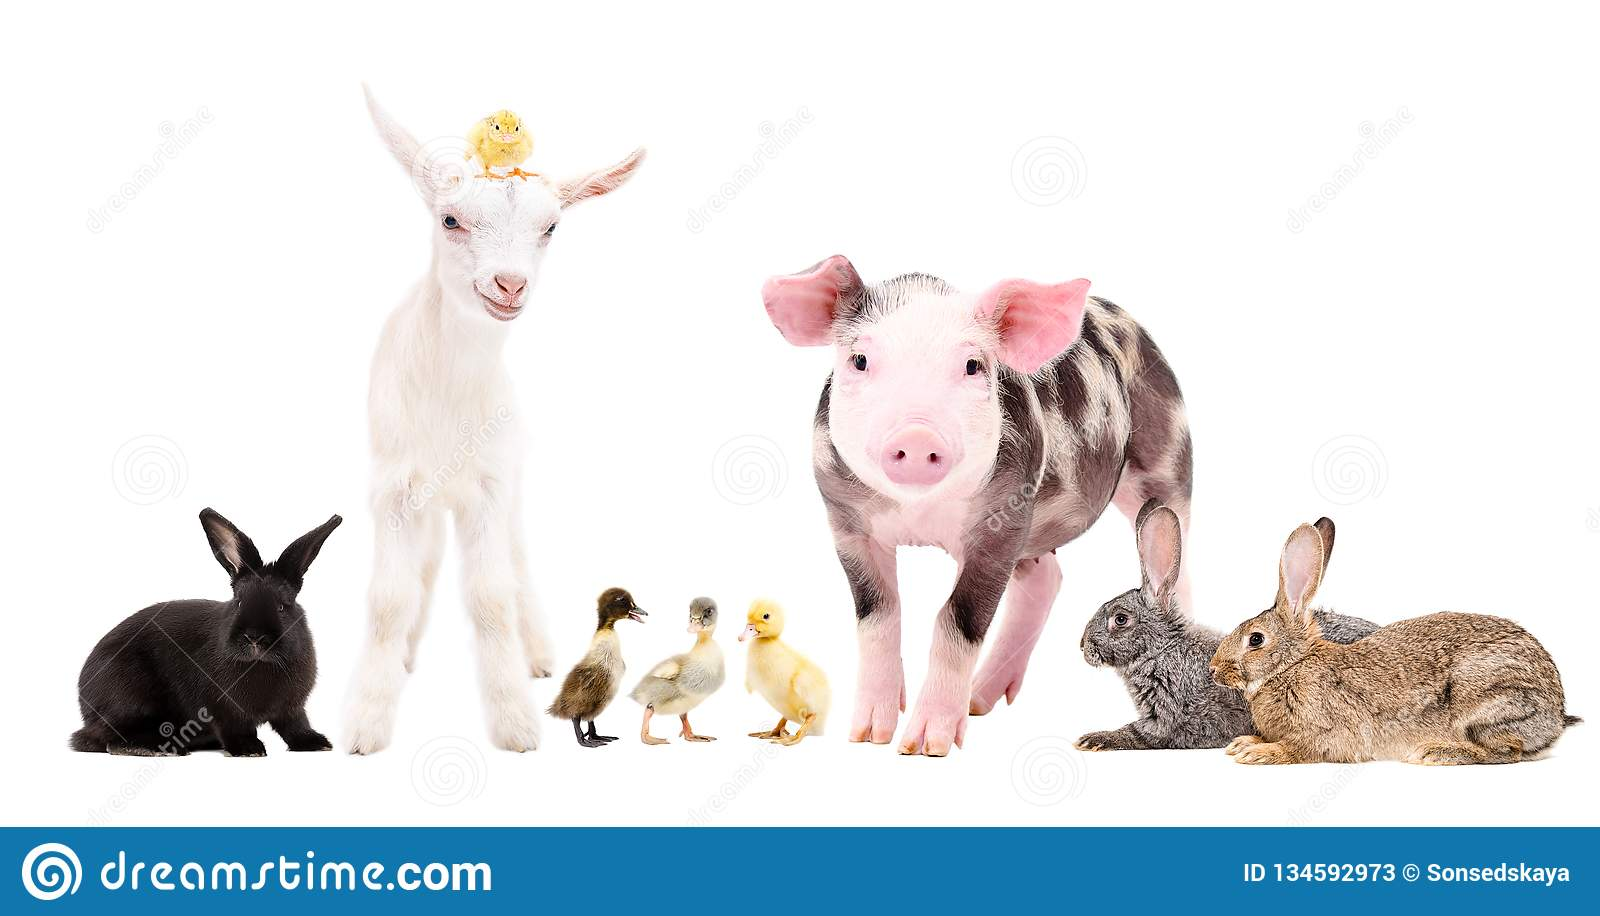 Group of cute farm animals standing together